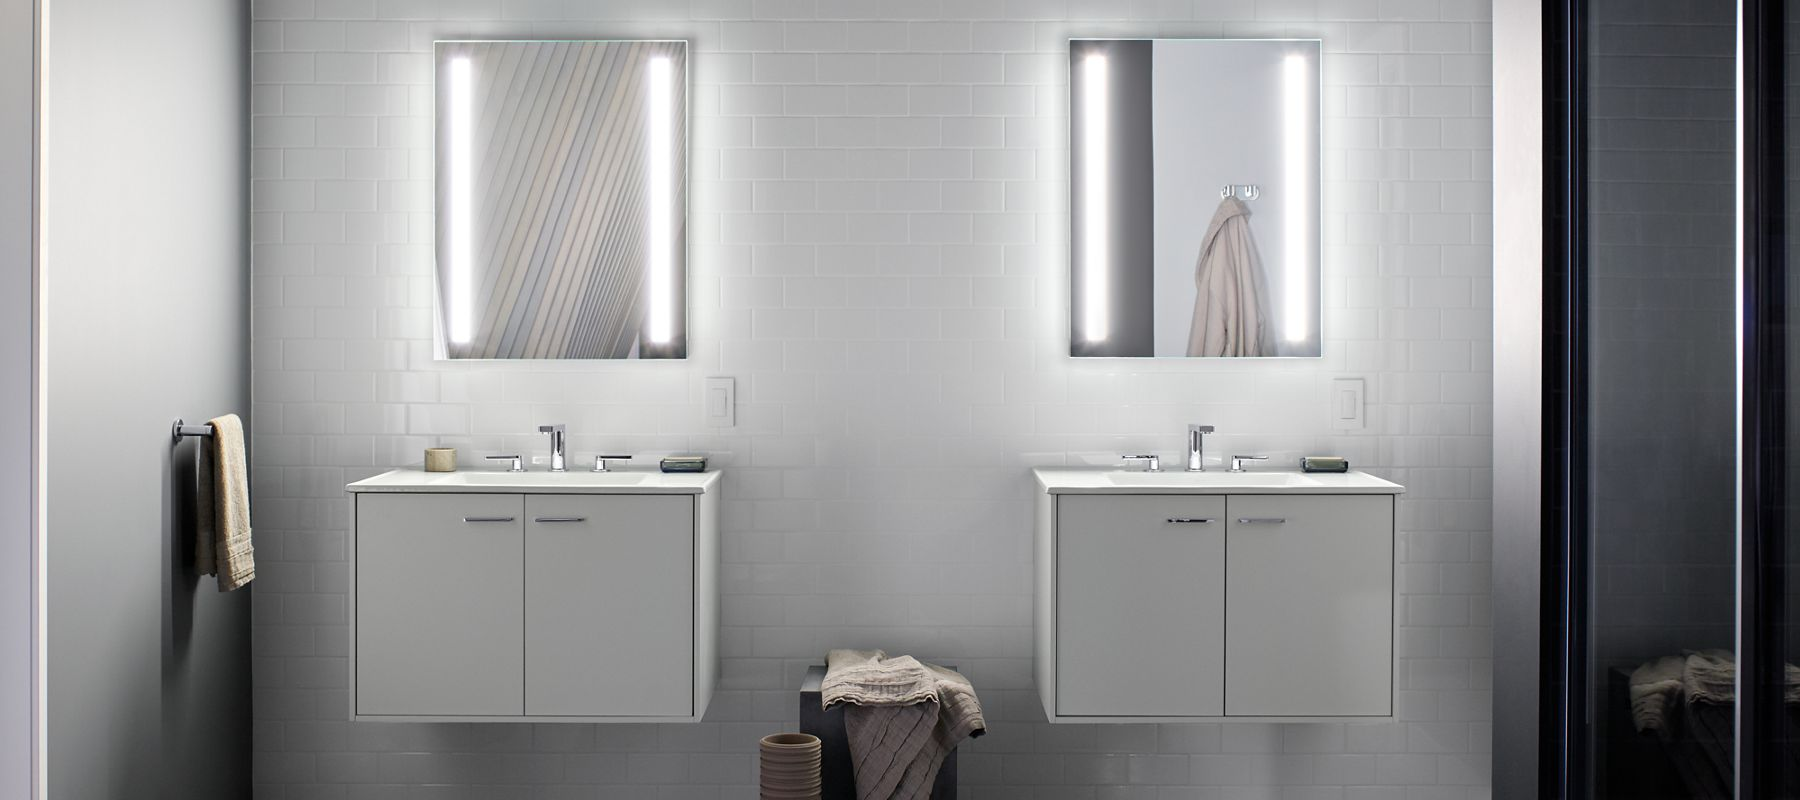 better light - Bathroom Cabinets And Mirrors